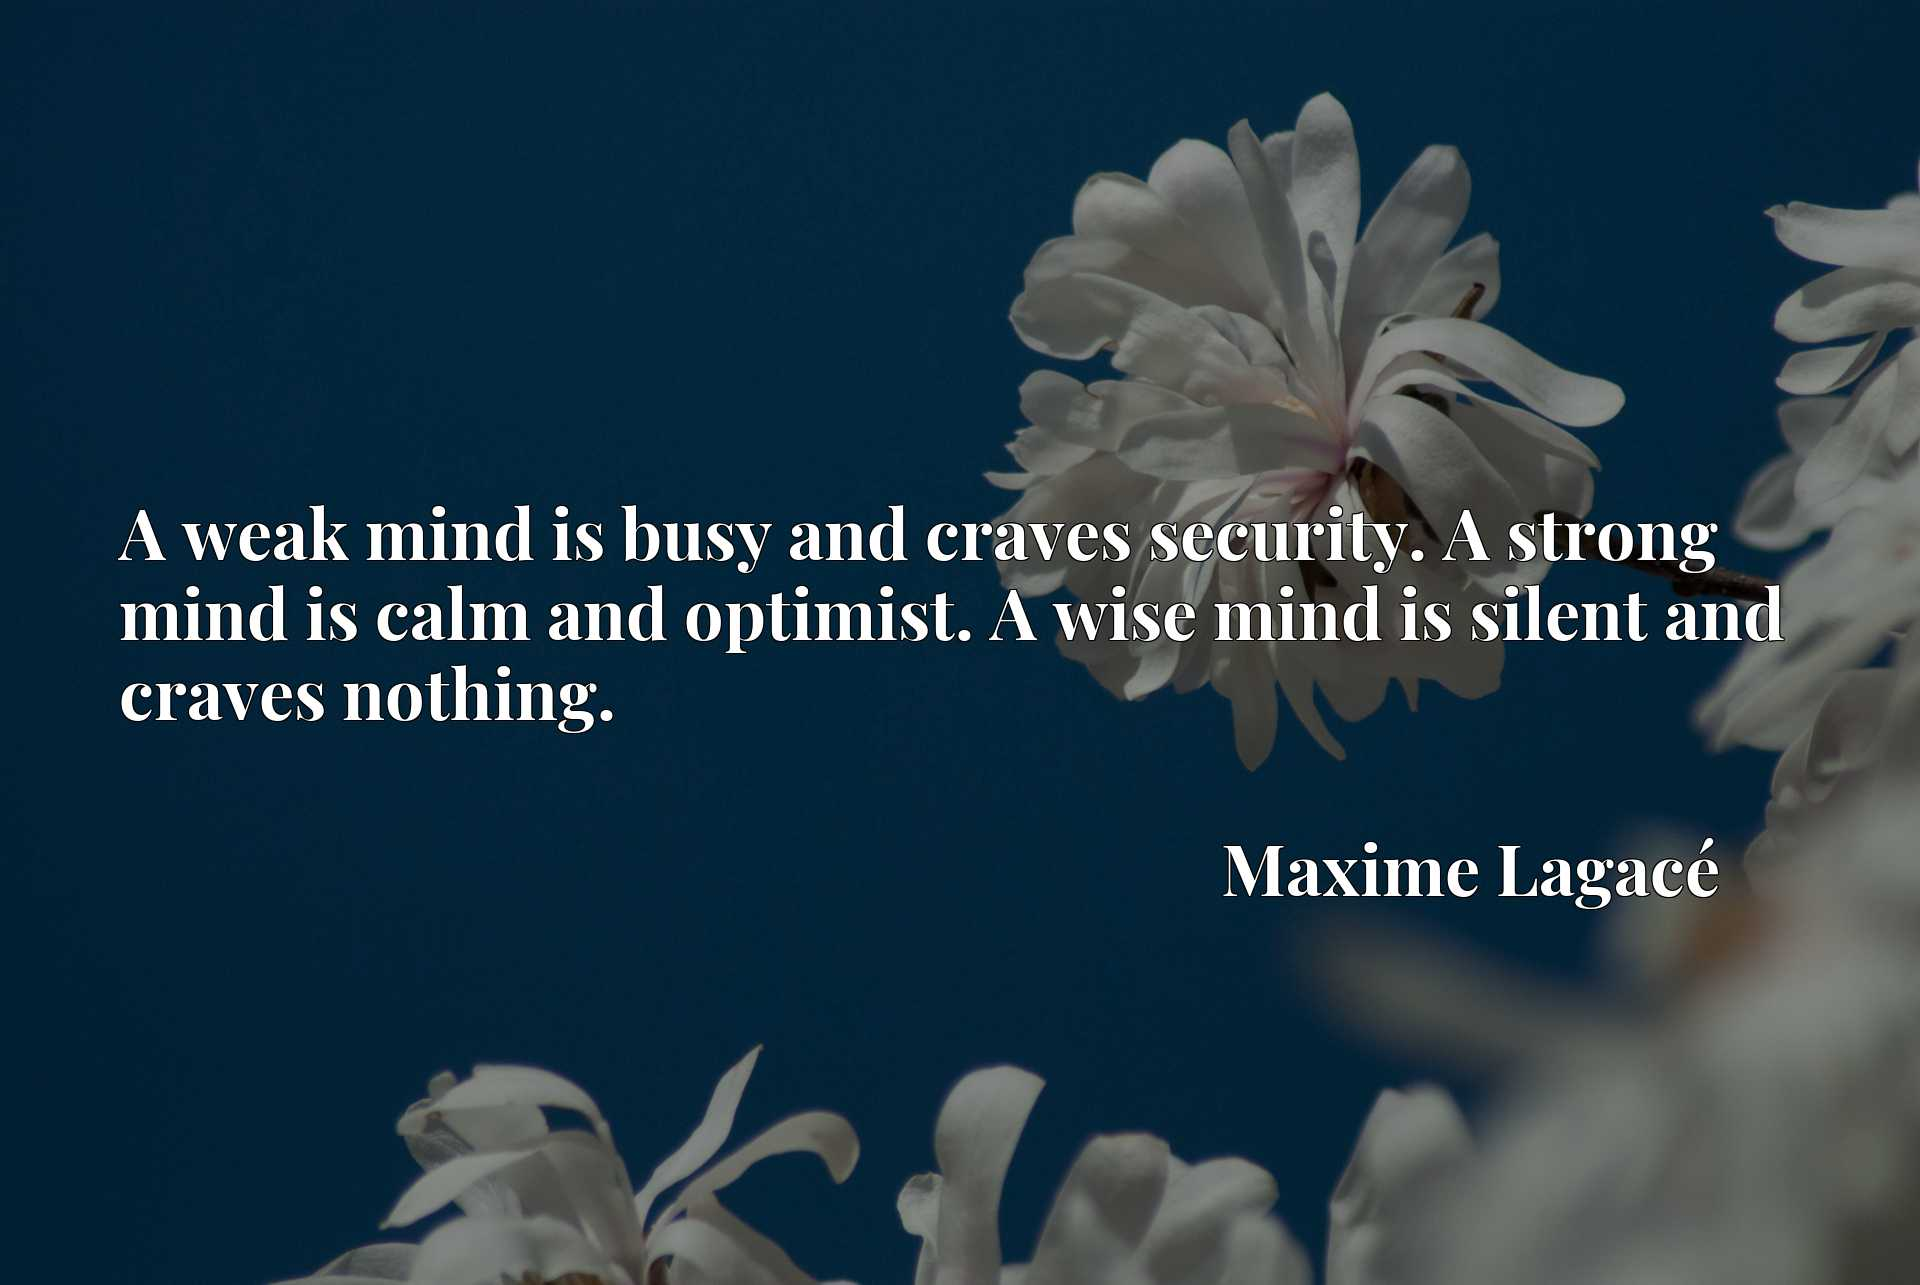 Quote Picture :A weak mind is busy and craves security. A strong mind is calm and optimist. A wise mind is silent and craves nothing.